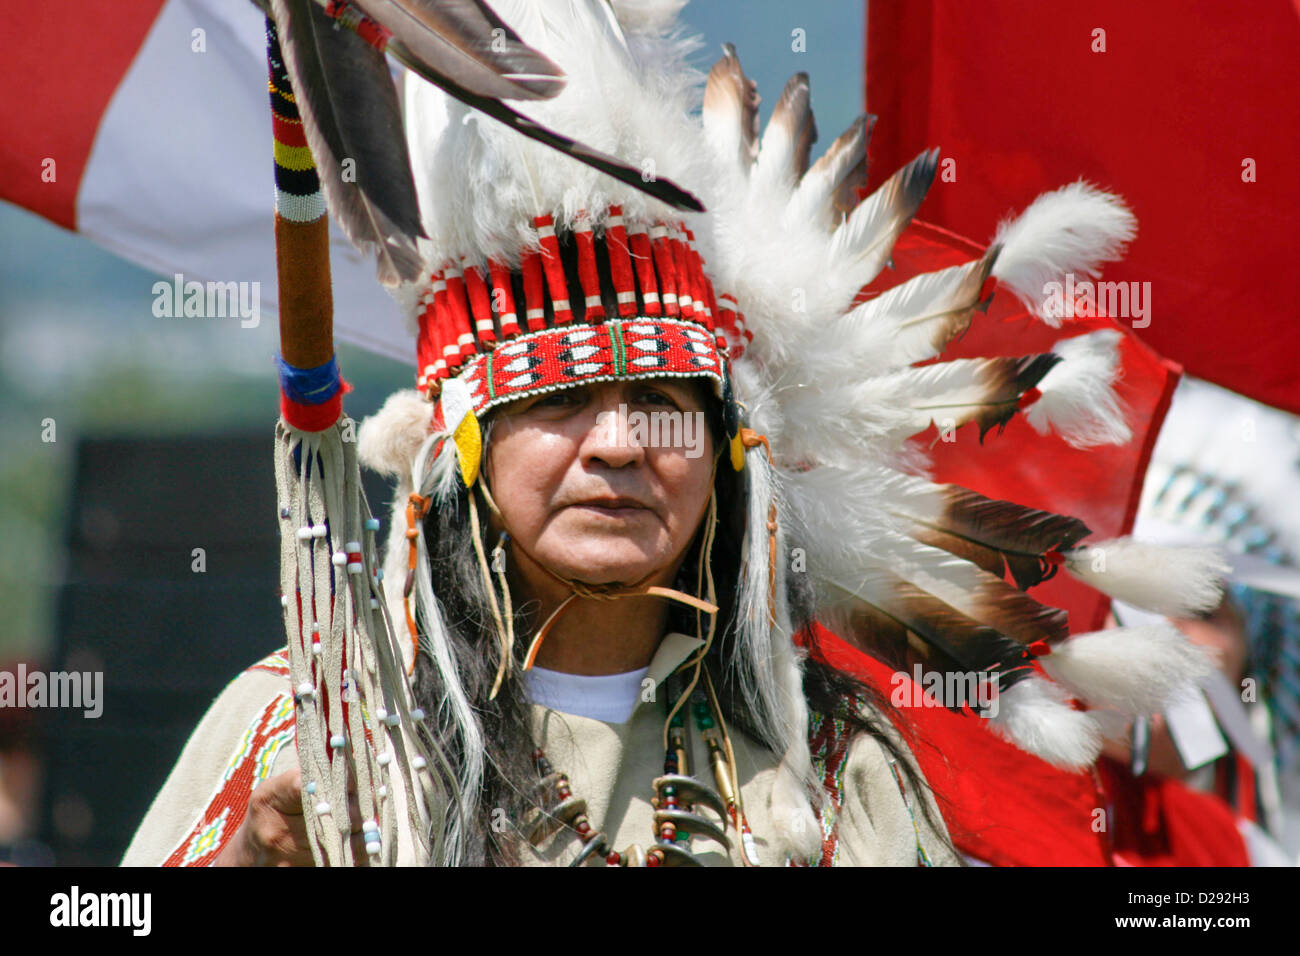 Squamish First Nations Chief At Opening Ceremonies Of Pow-Wow In West Vancouver, B.C. Canada Stock Photo